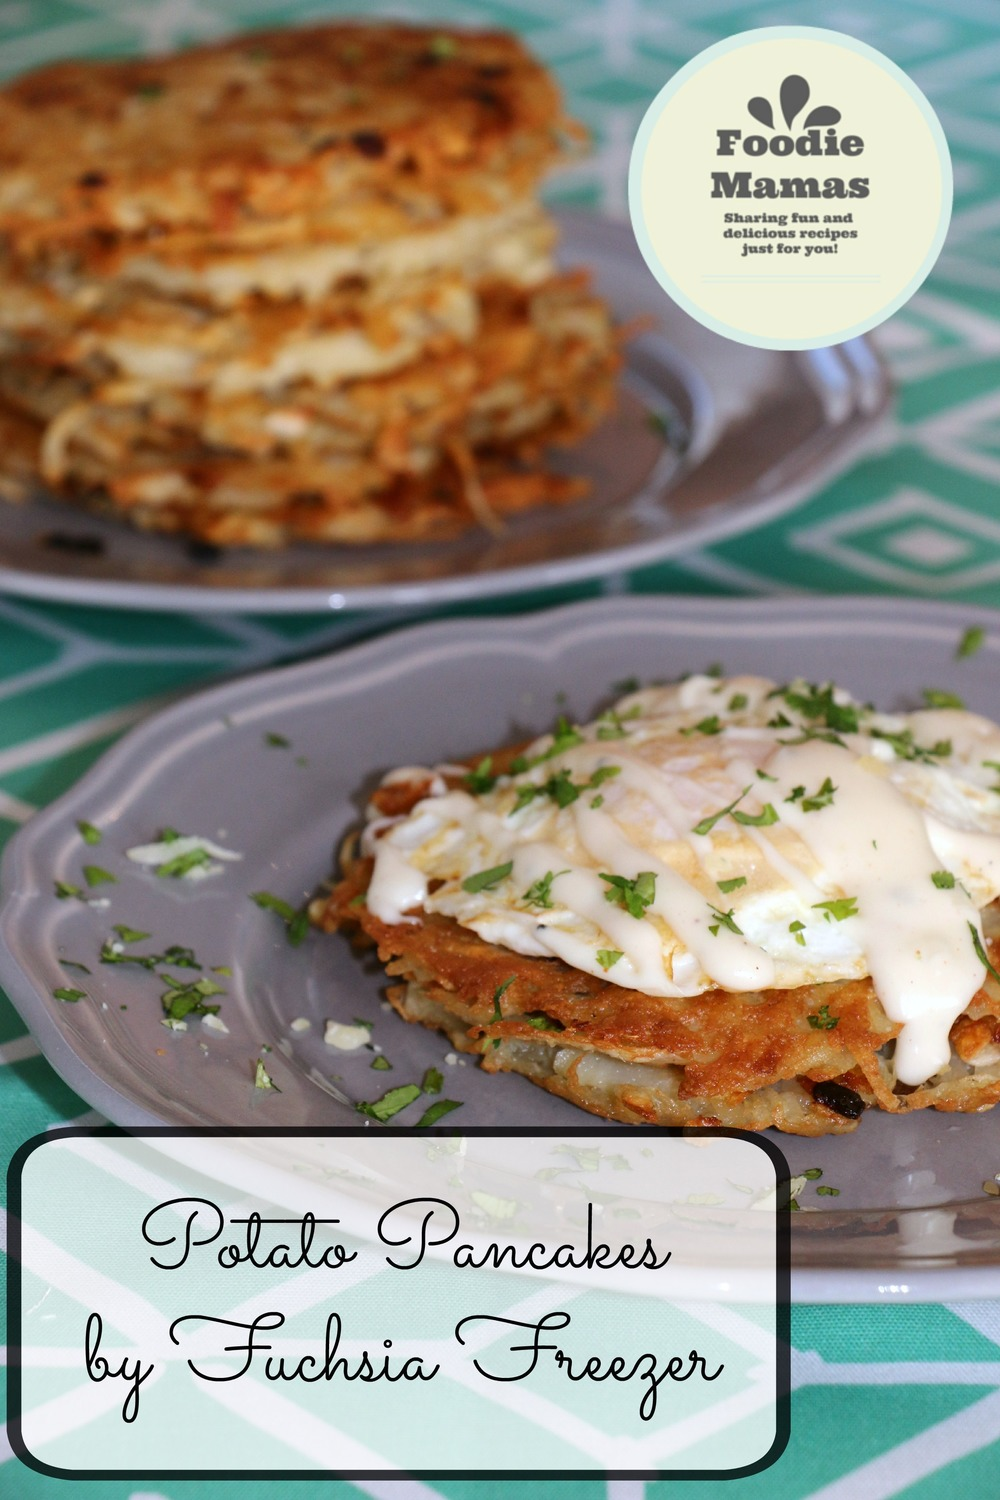 Potato Pancakes with Eggs and Mornay Sauce